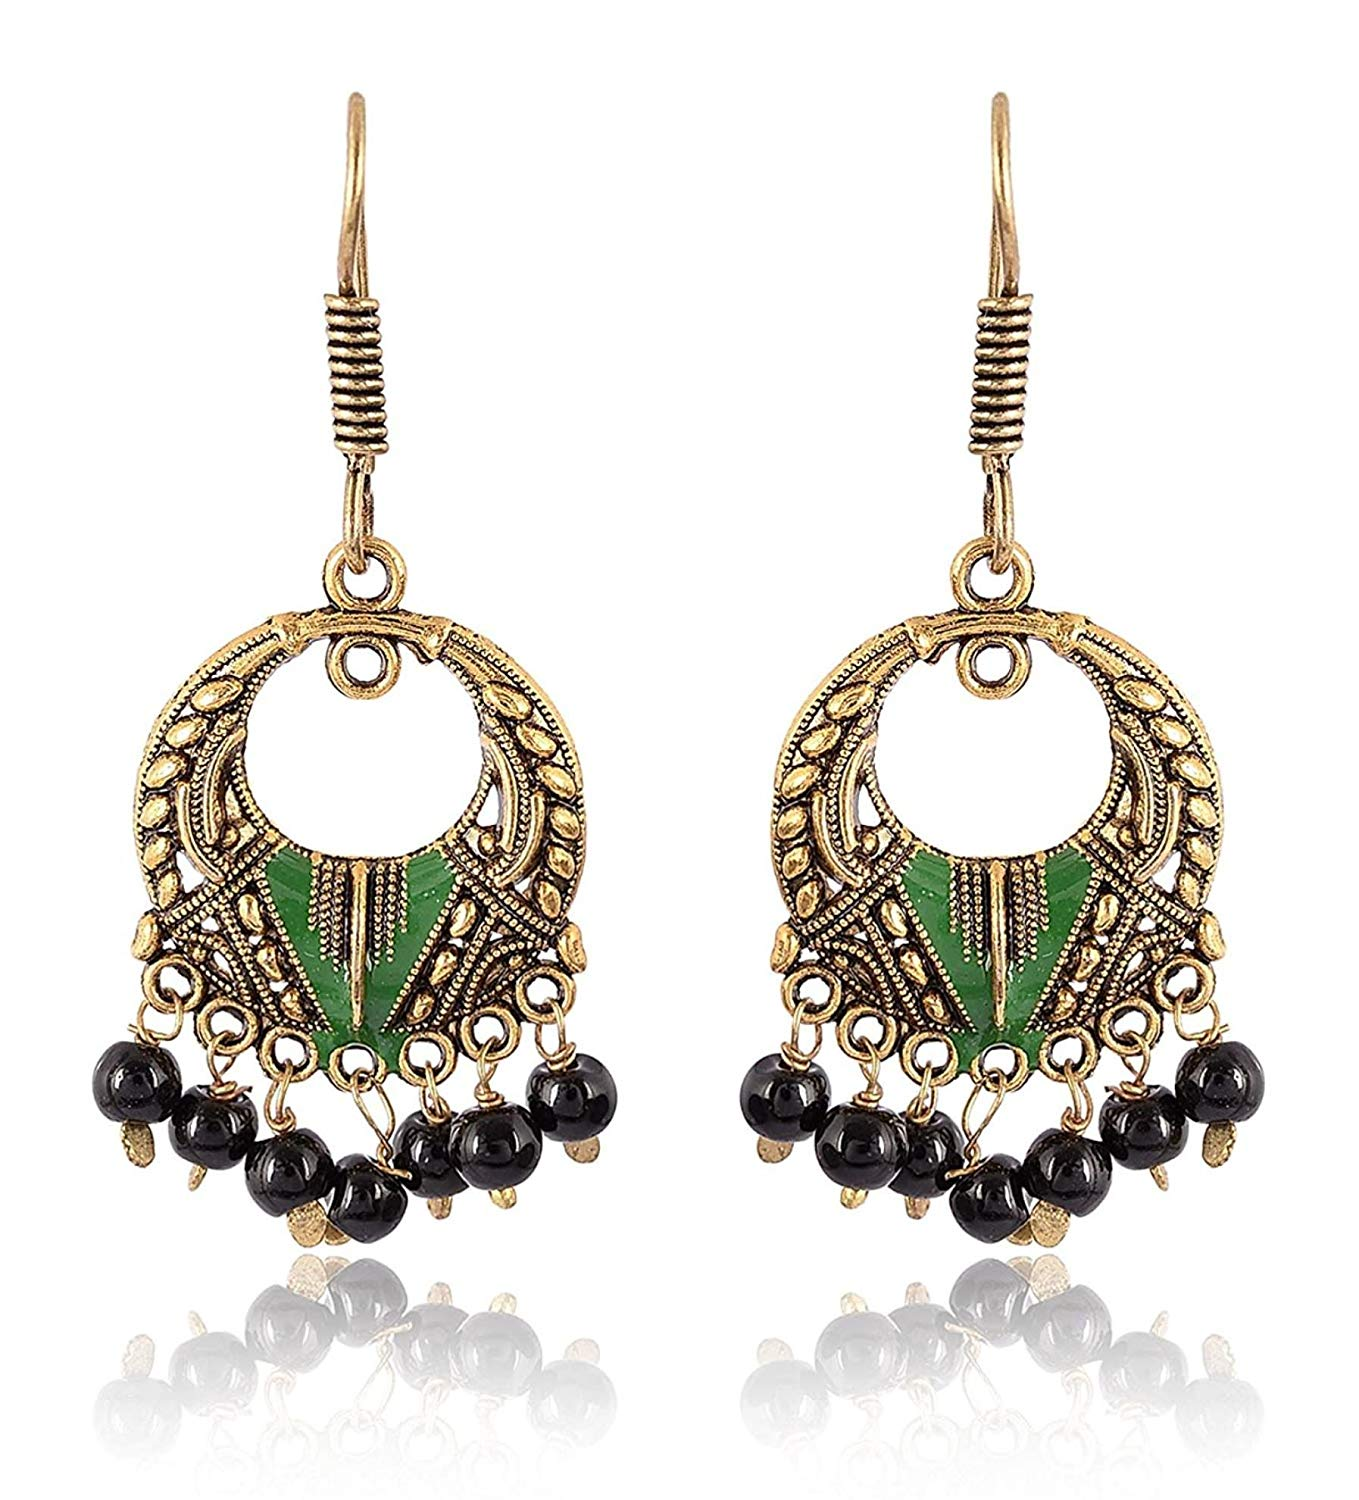 Subharpit Ethnic Blue Non-Precious Metal Dangle /& Drop Earrings for Woman and Girls